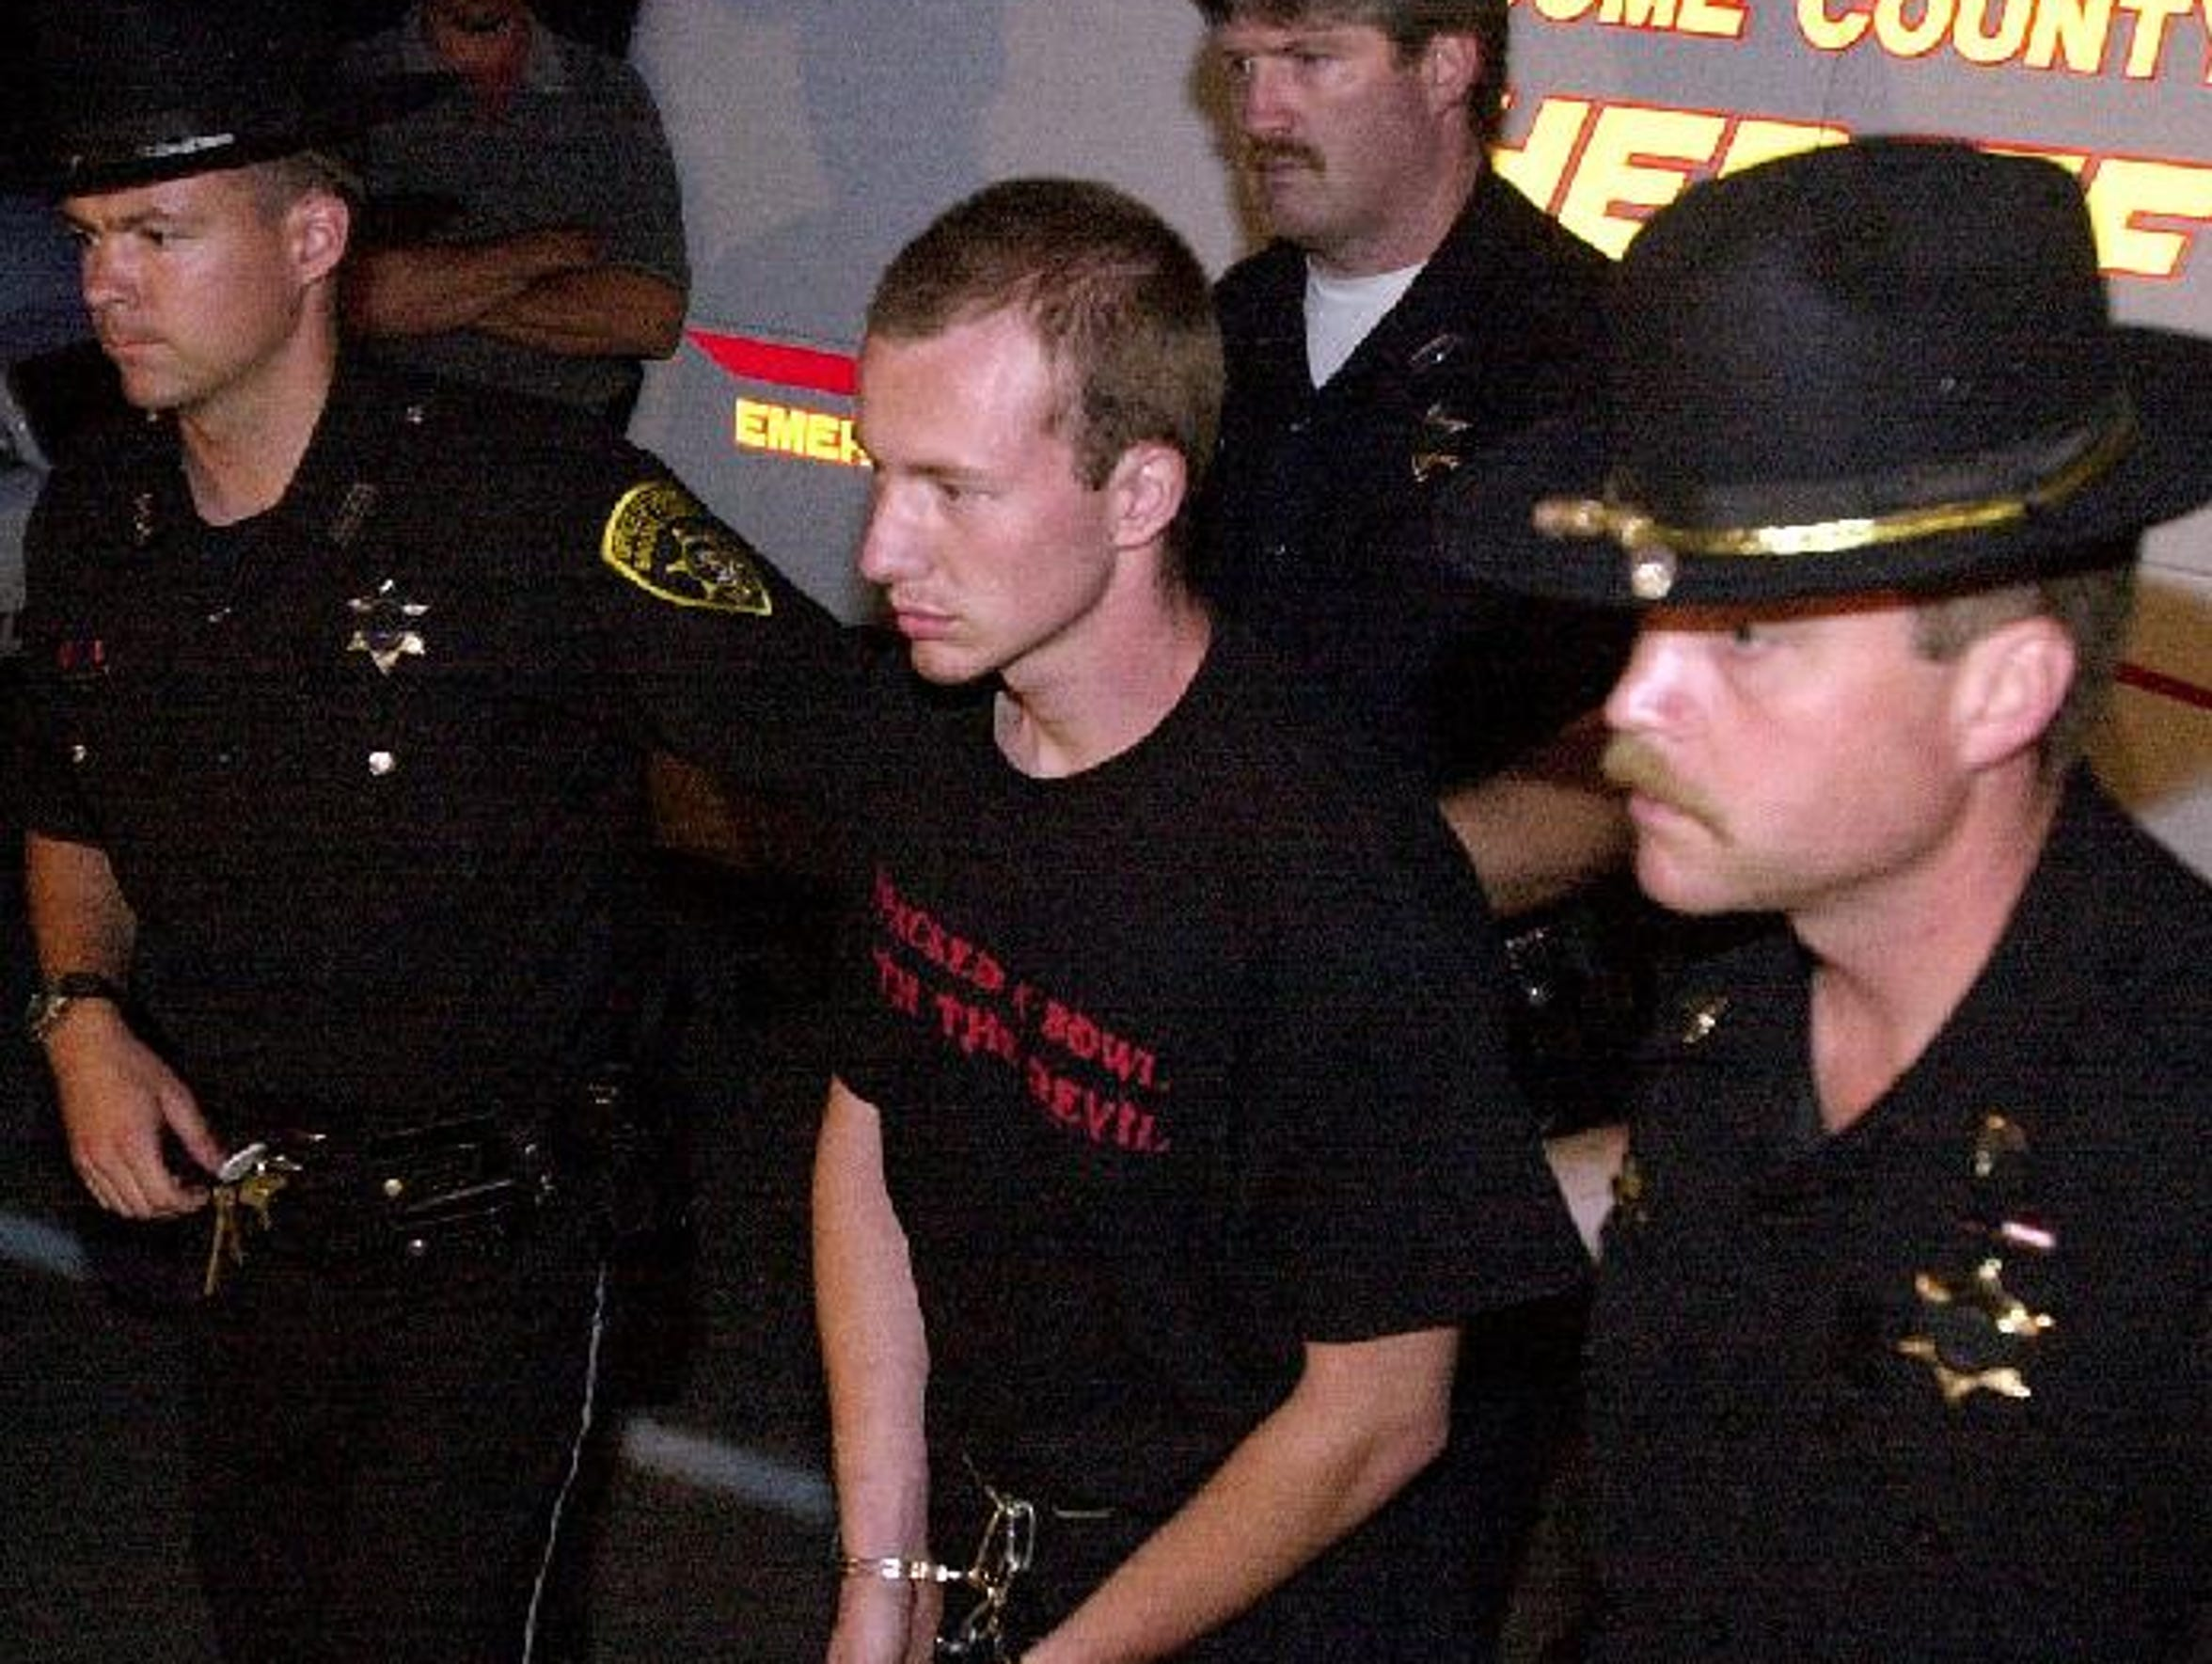 A file photo from 2002 shows David Sweat, then 22,